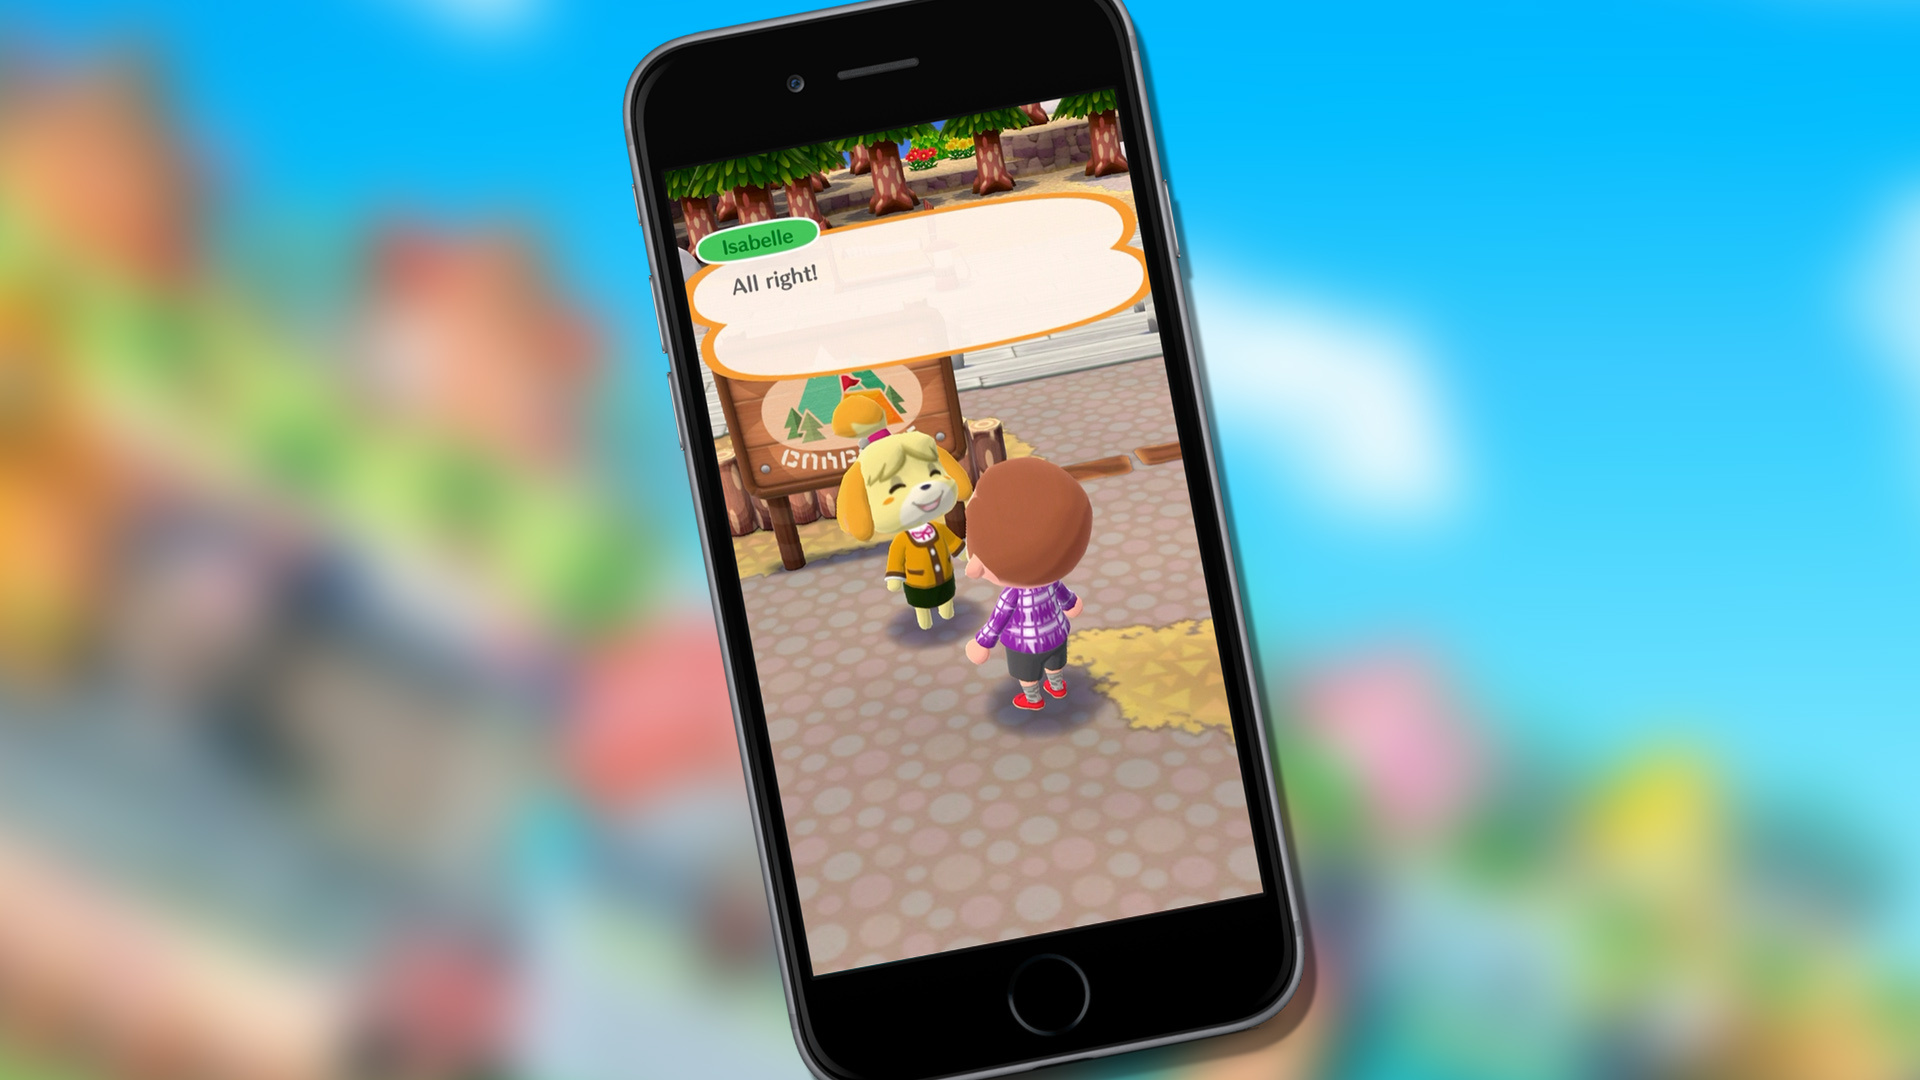 Nintendo's Strategy For Mobile Involves Having Players Pay Less